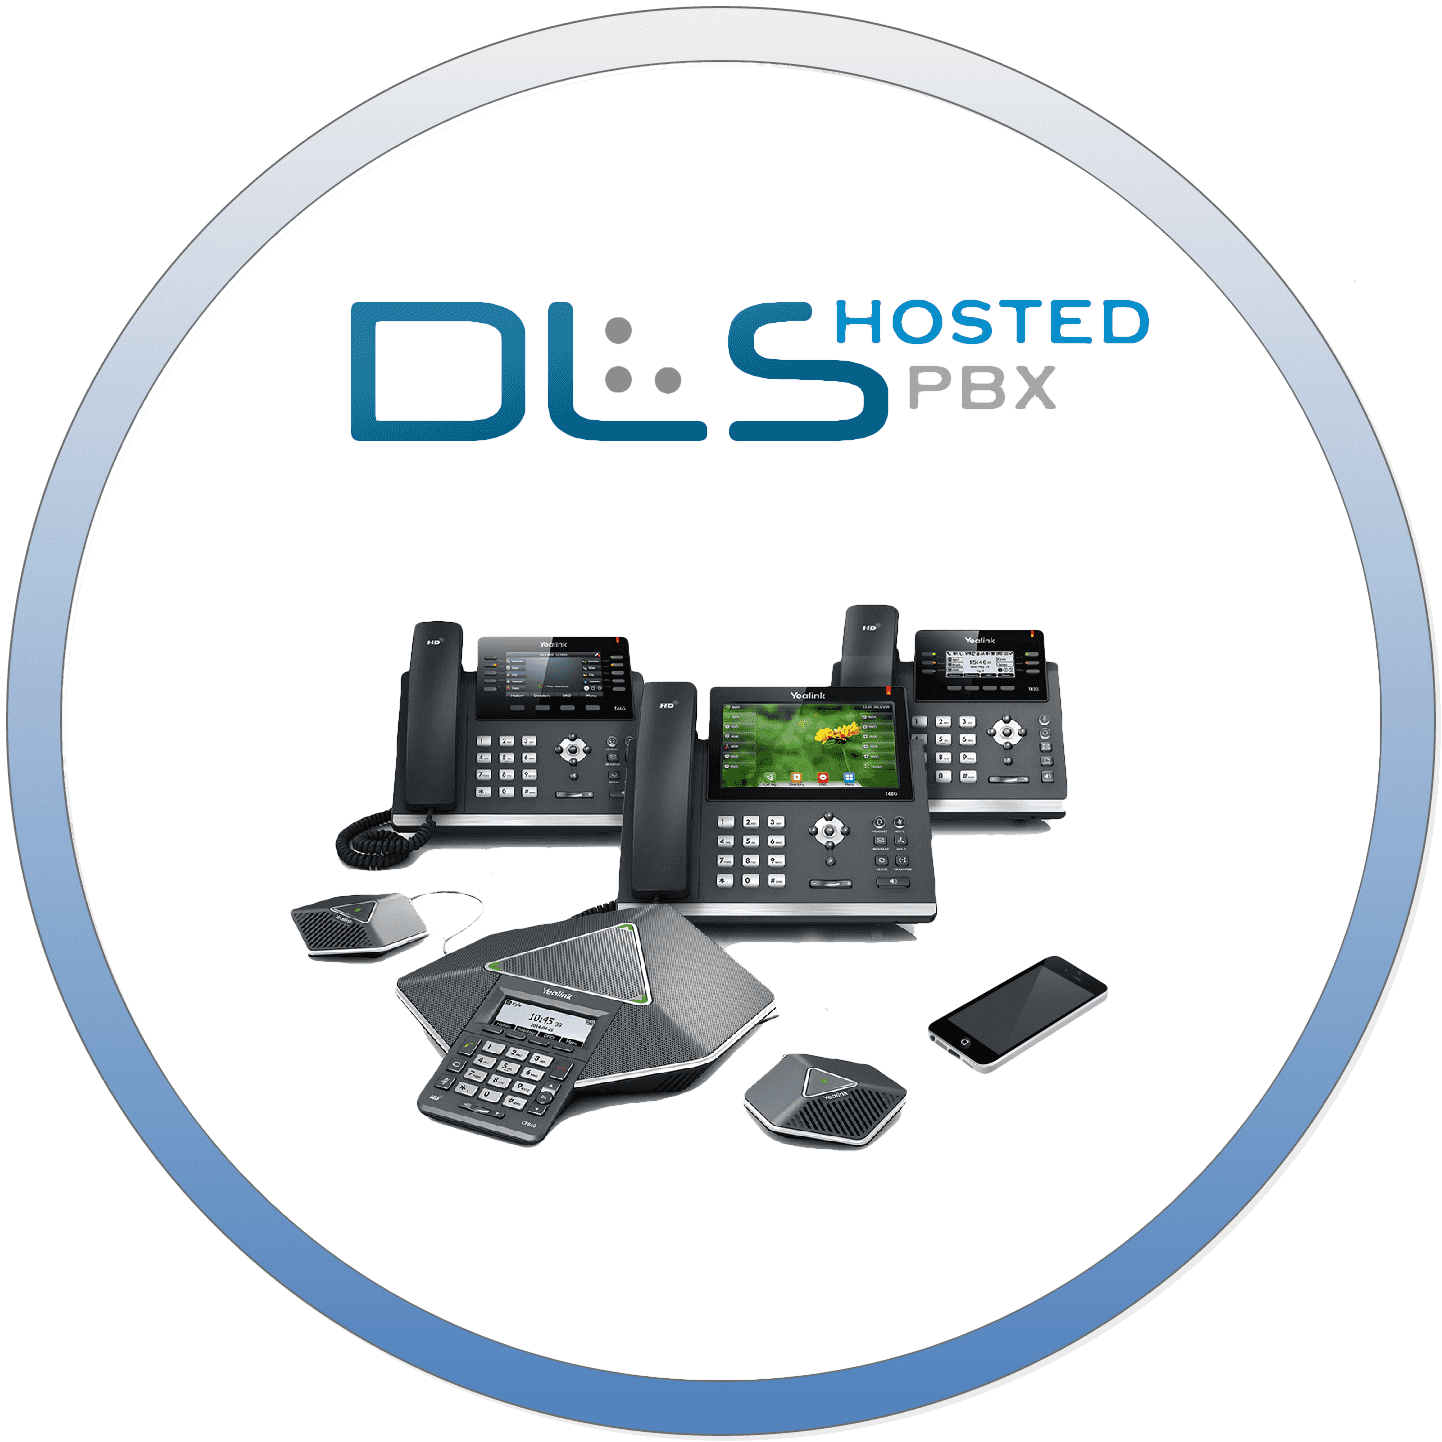 Best Voip Hosted Pbx